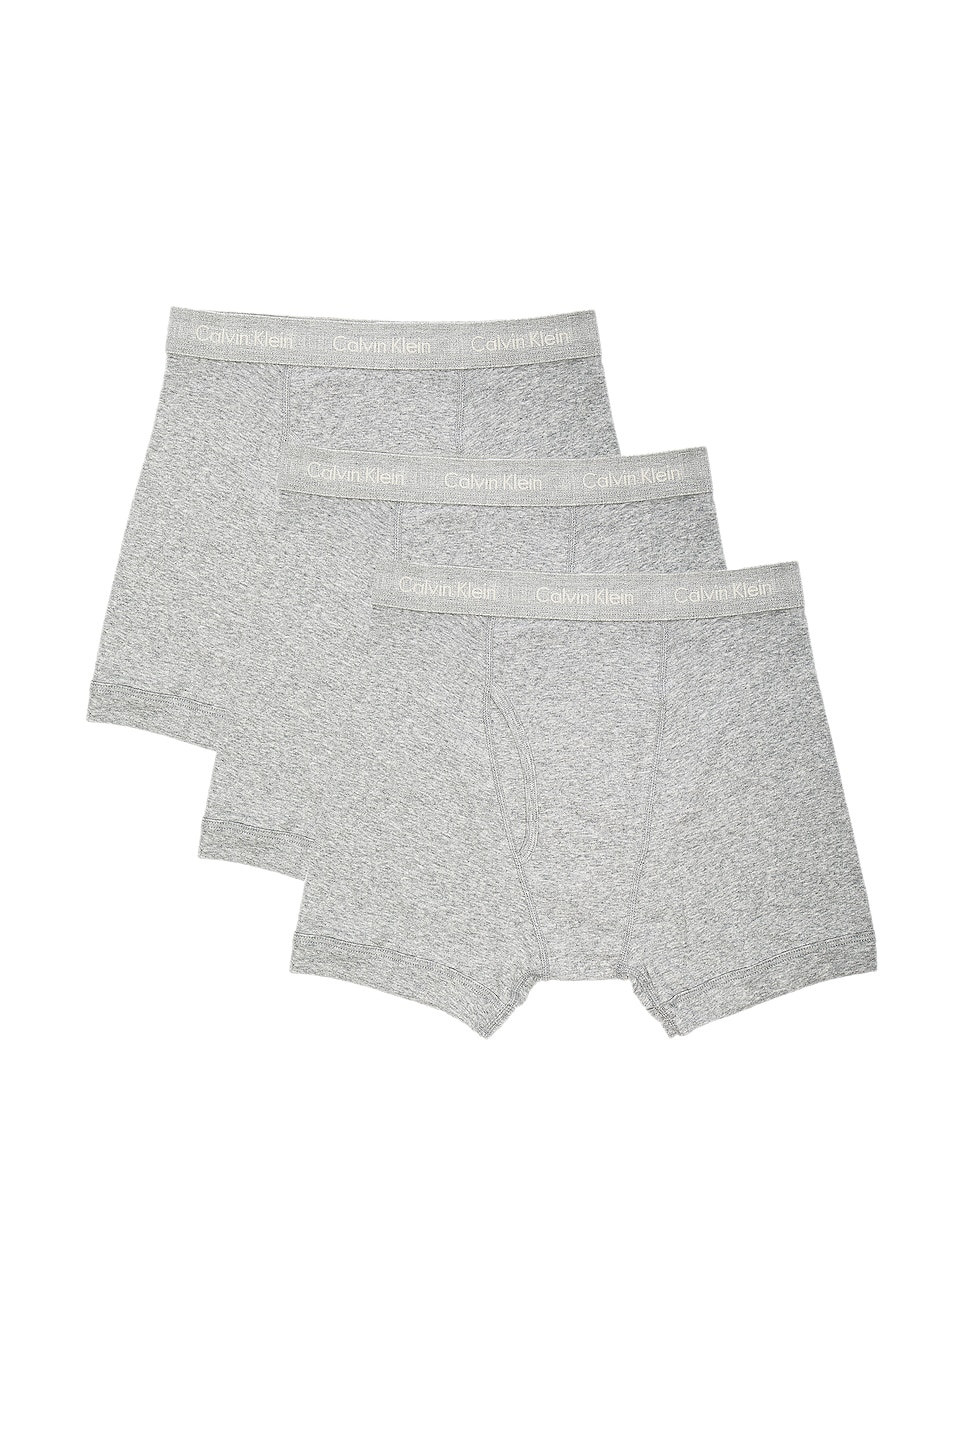 Calvin Klein Underwear Cotton Classics 3 Pack Boxer Briefs in Heather Grey